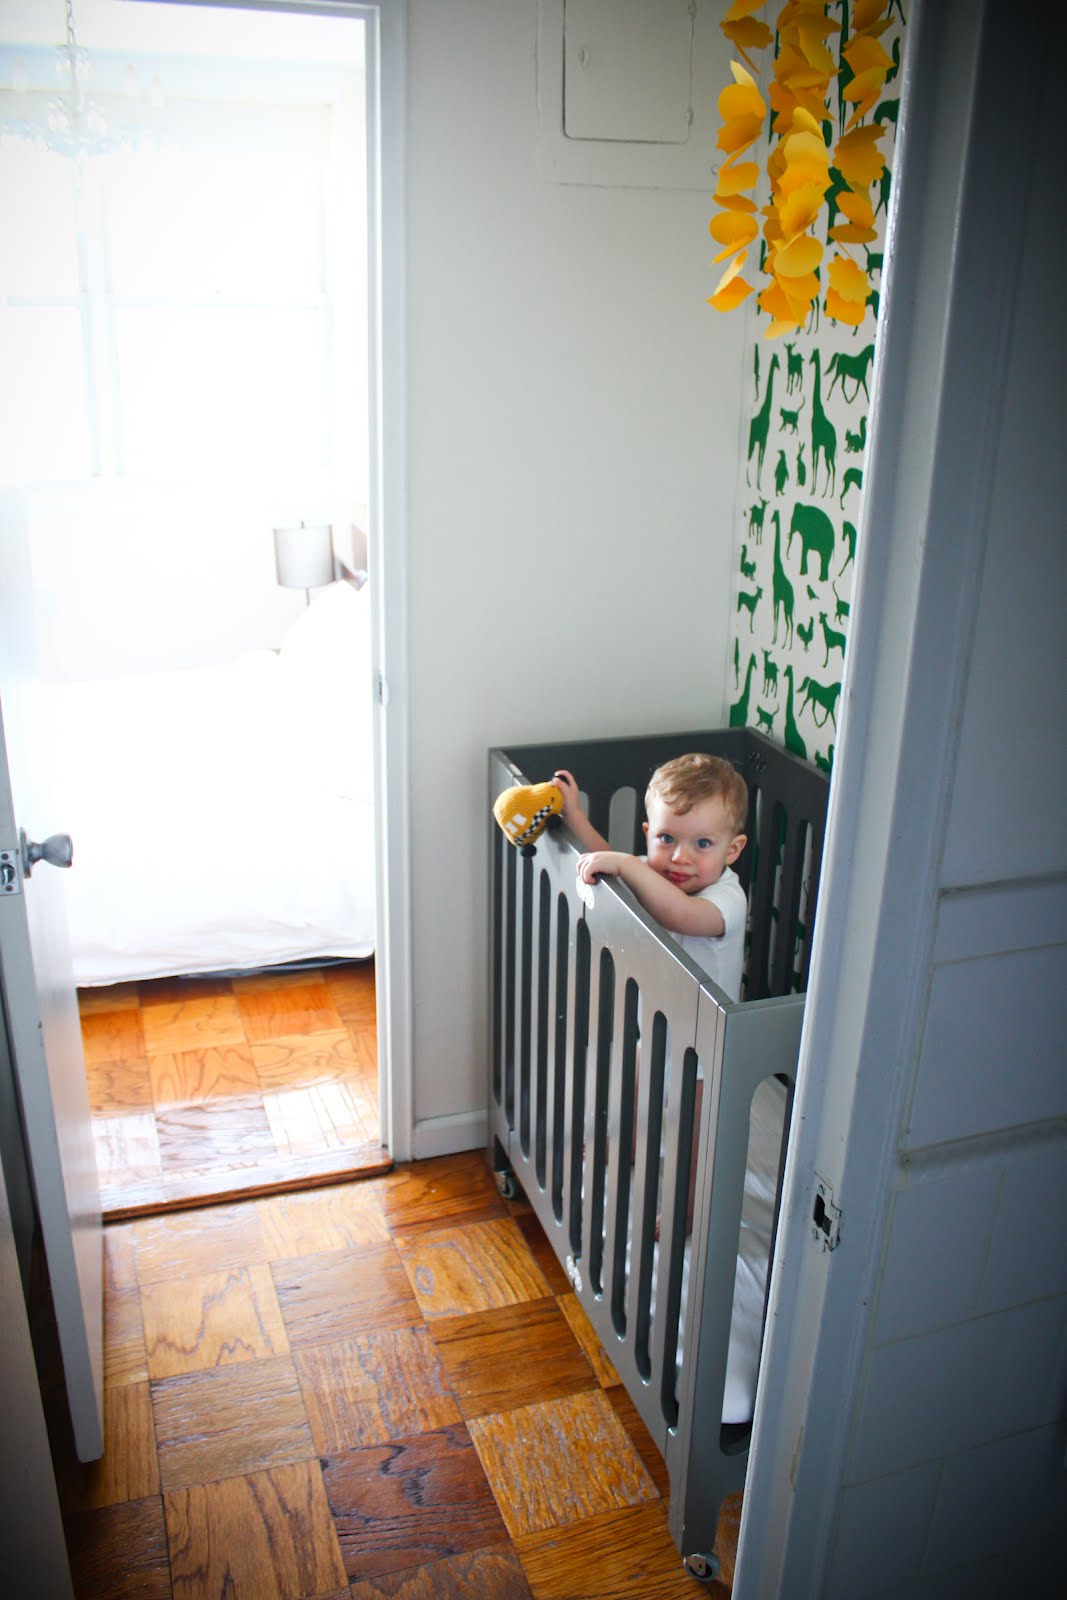 nursery-in-closet-tiny-apartment-nyc-mini-crib-house Tiny House Floor Plan Kids on cottage floor plans, tiny houses on wheels, tiny house plans 20x20, tiny houses one story, great tiny house plans, cabin house plans, home floor plans, shed house plans, small house plans, shipping container floor plans, travel trailer floor plans, studio floor plans, architecture floor plans,